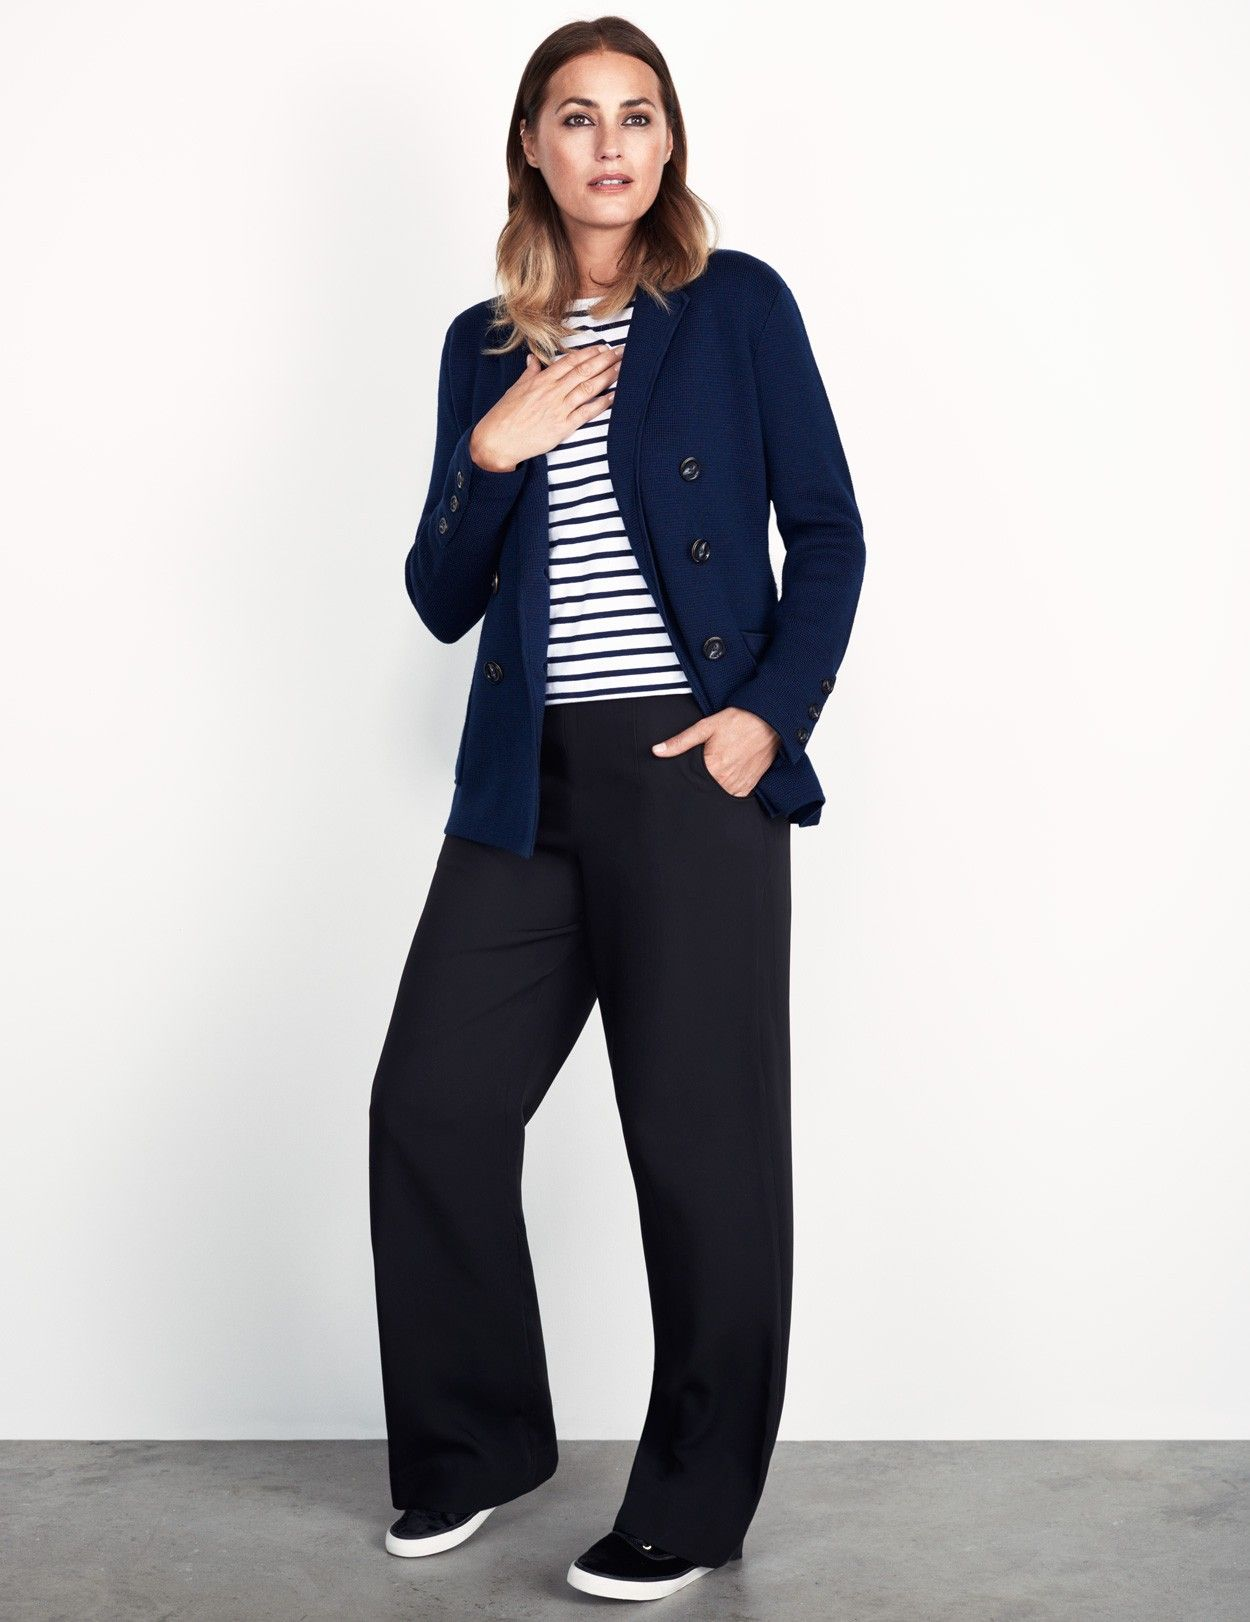 Inspired by the success of our Silk Coco pants , these wide-leg trousers with button detail on one side can be worn with a shirt, or dressed down with a simple tee. An amazing techno fabric that just doesn't crease.